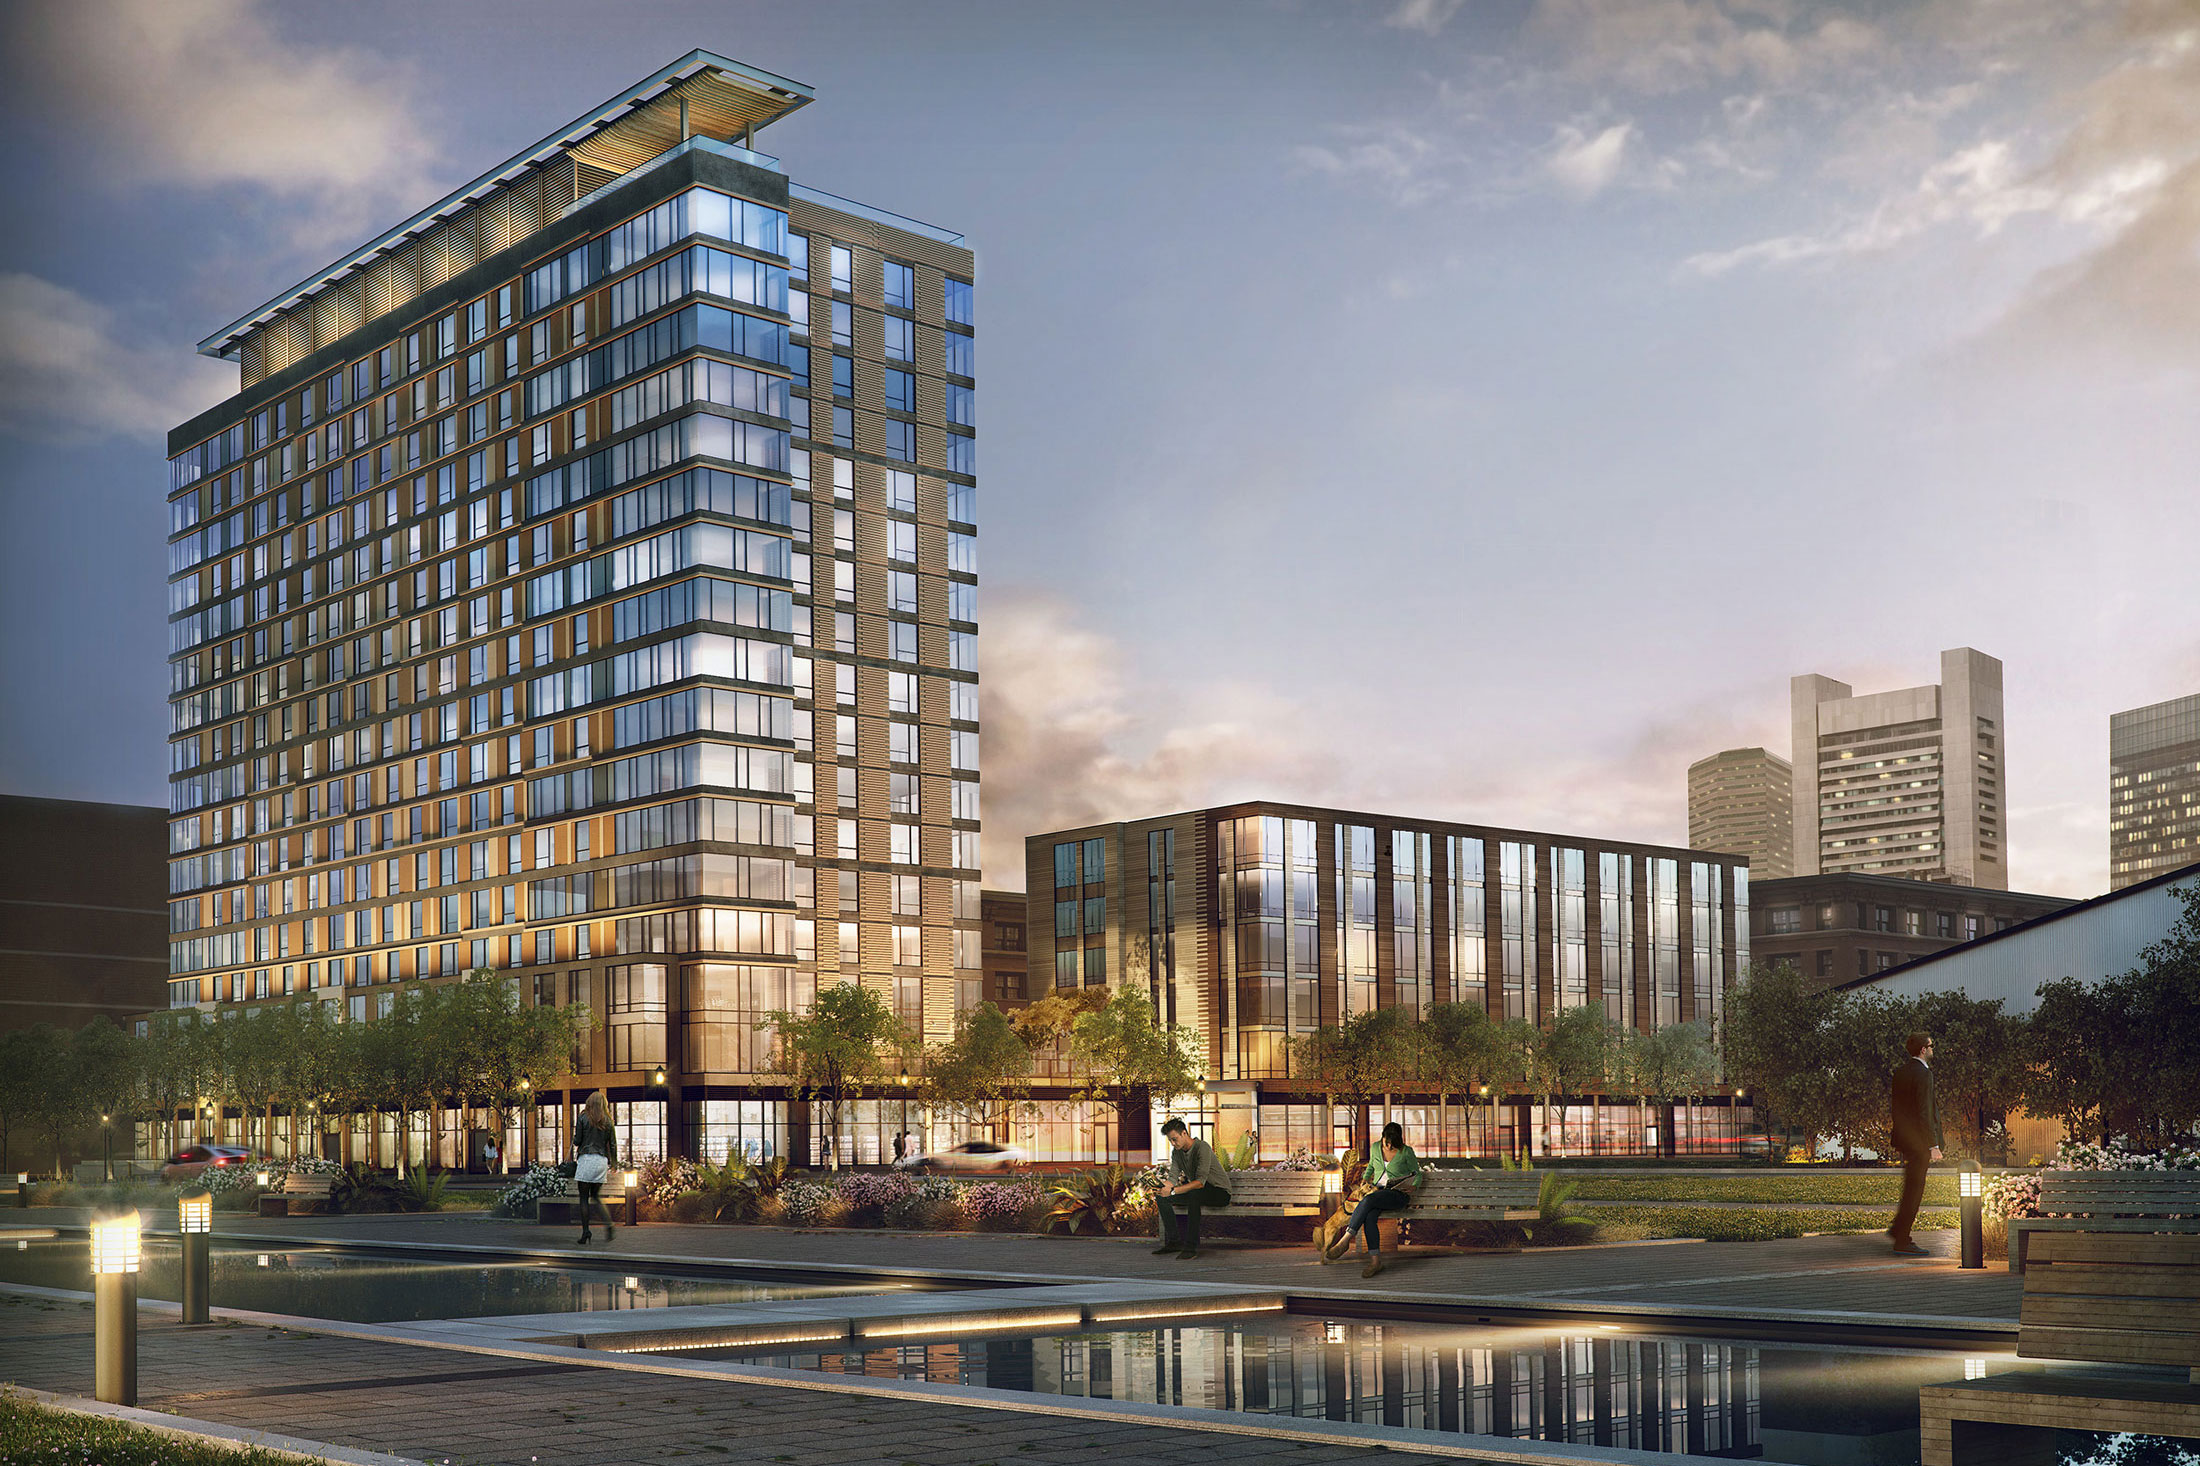 Architectural Rendering of the exterior of the Watermark Seaport project located in Boston, Massachusetts